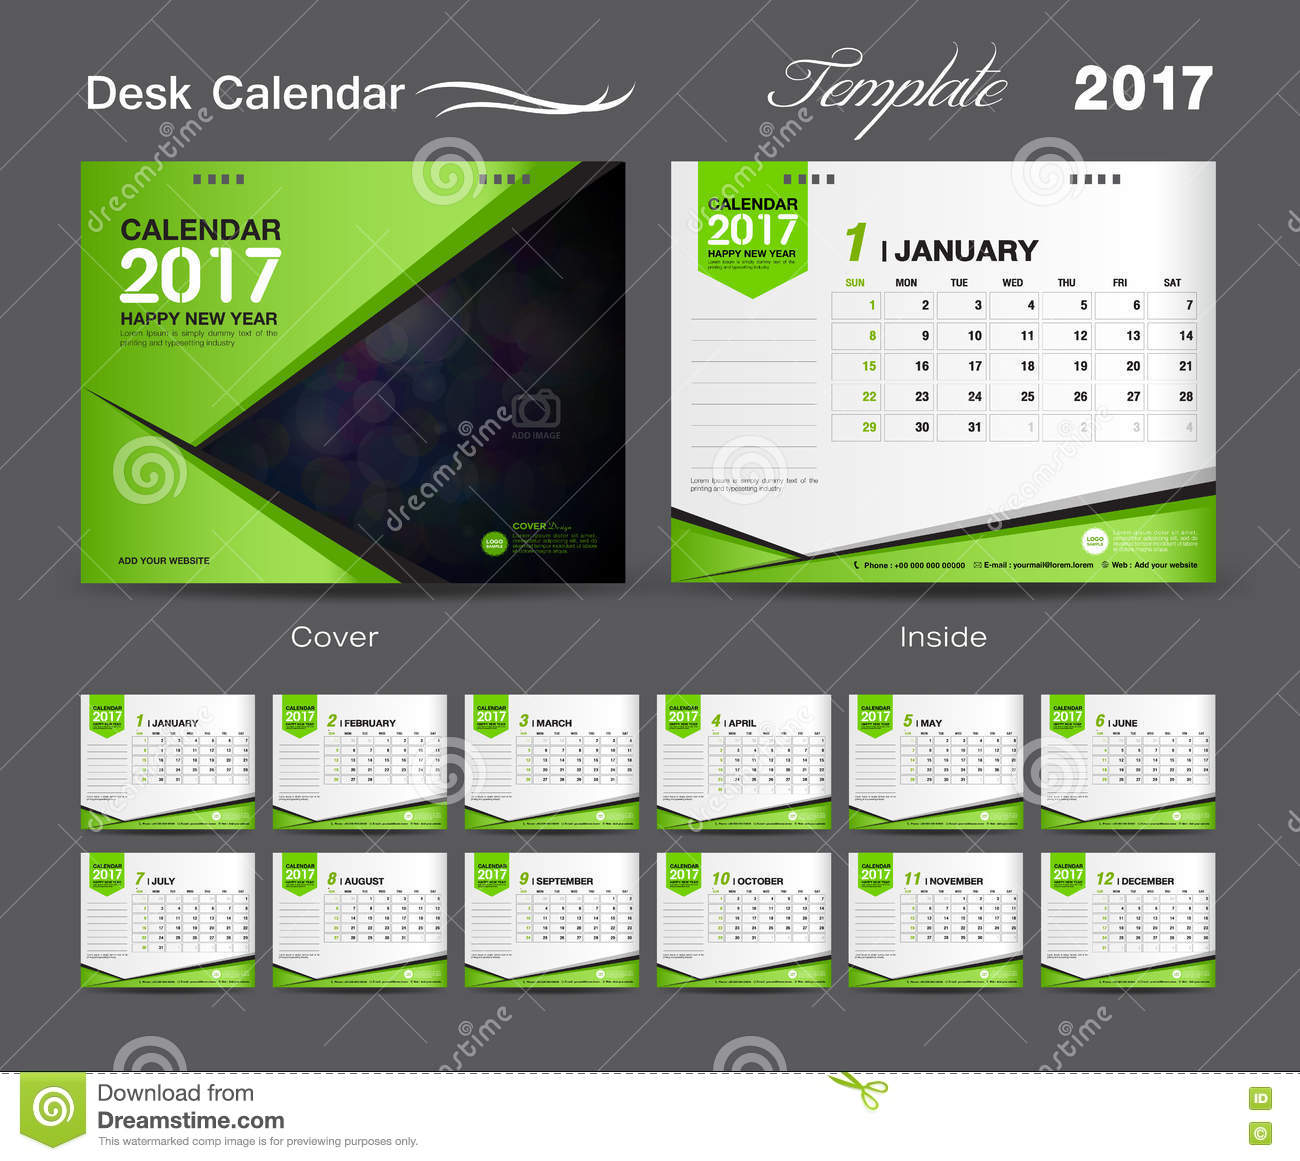 Calendar Green : Set green desk calendar template design cover